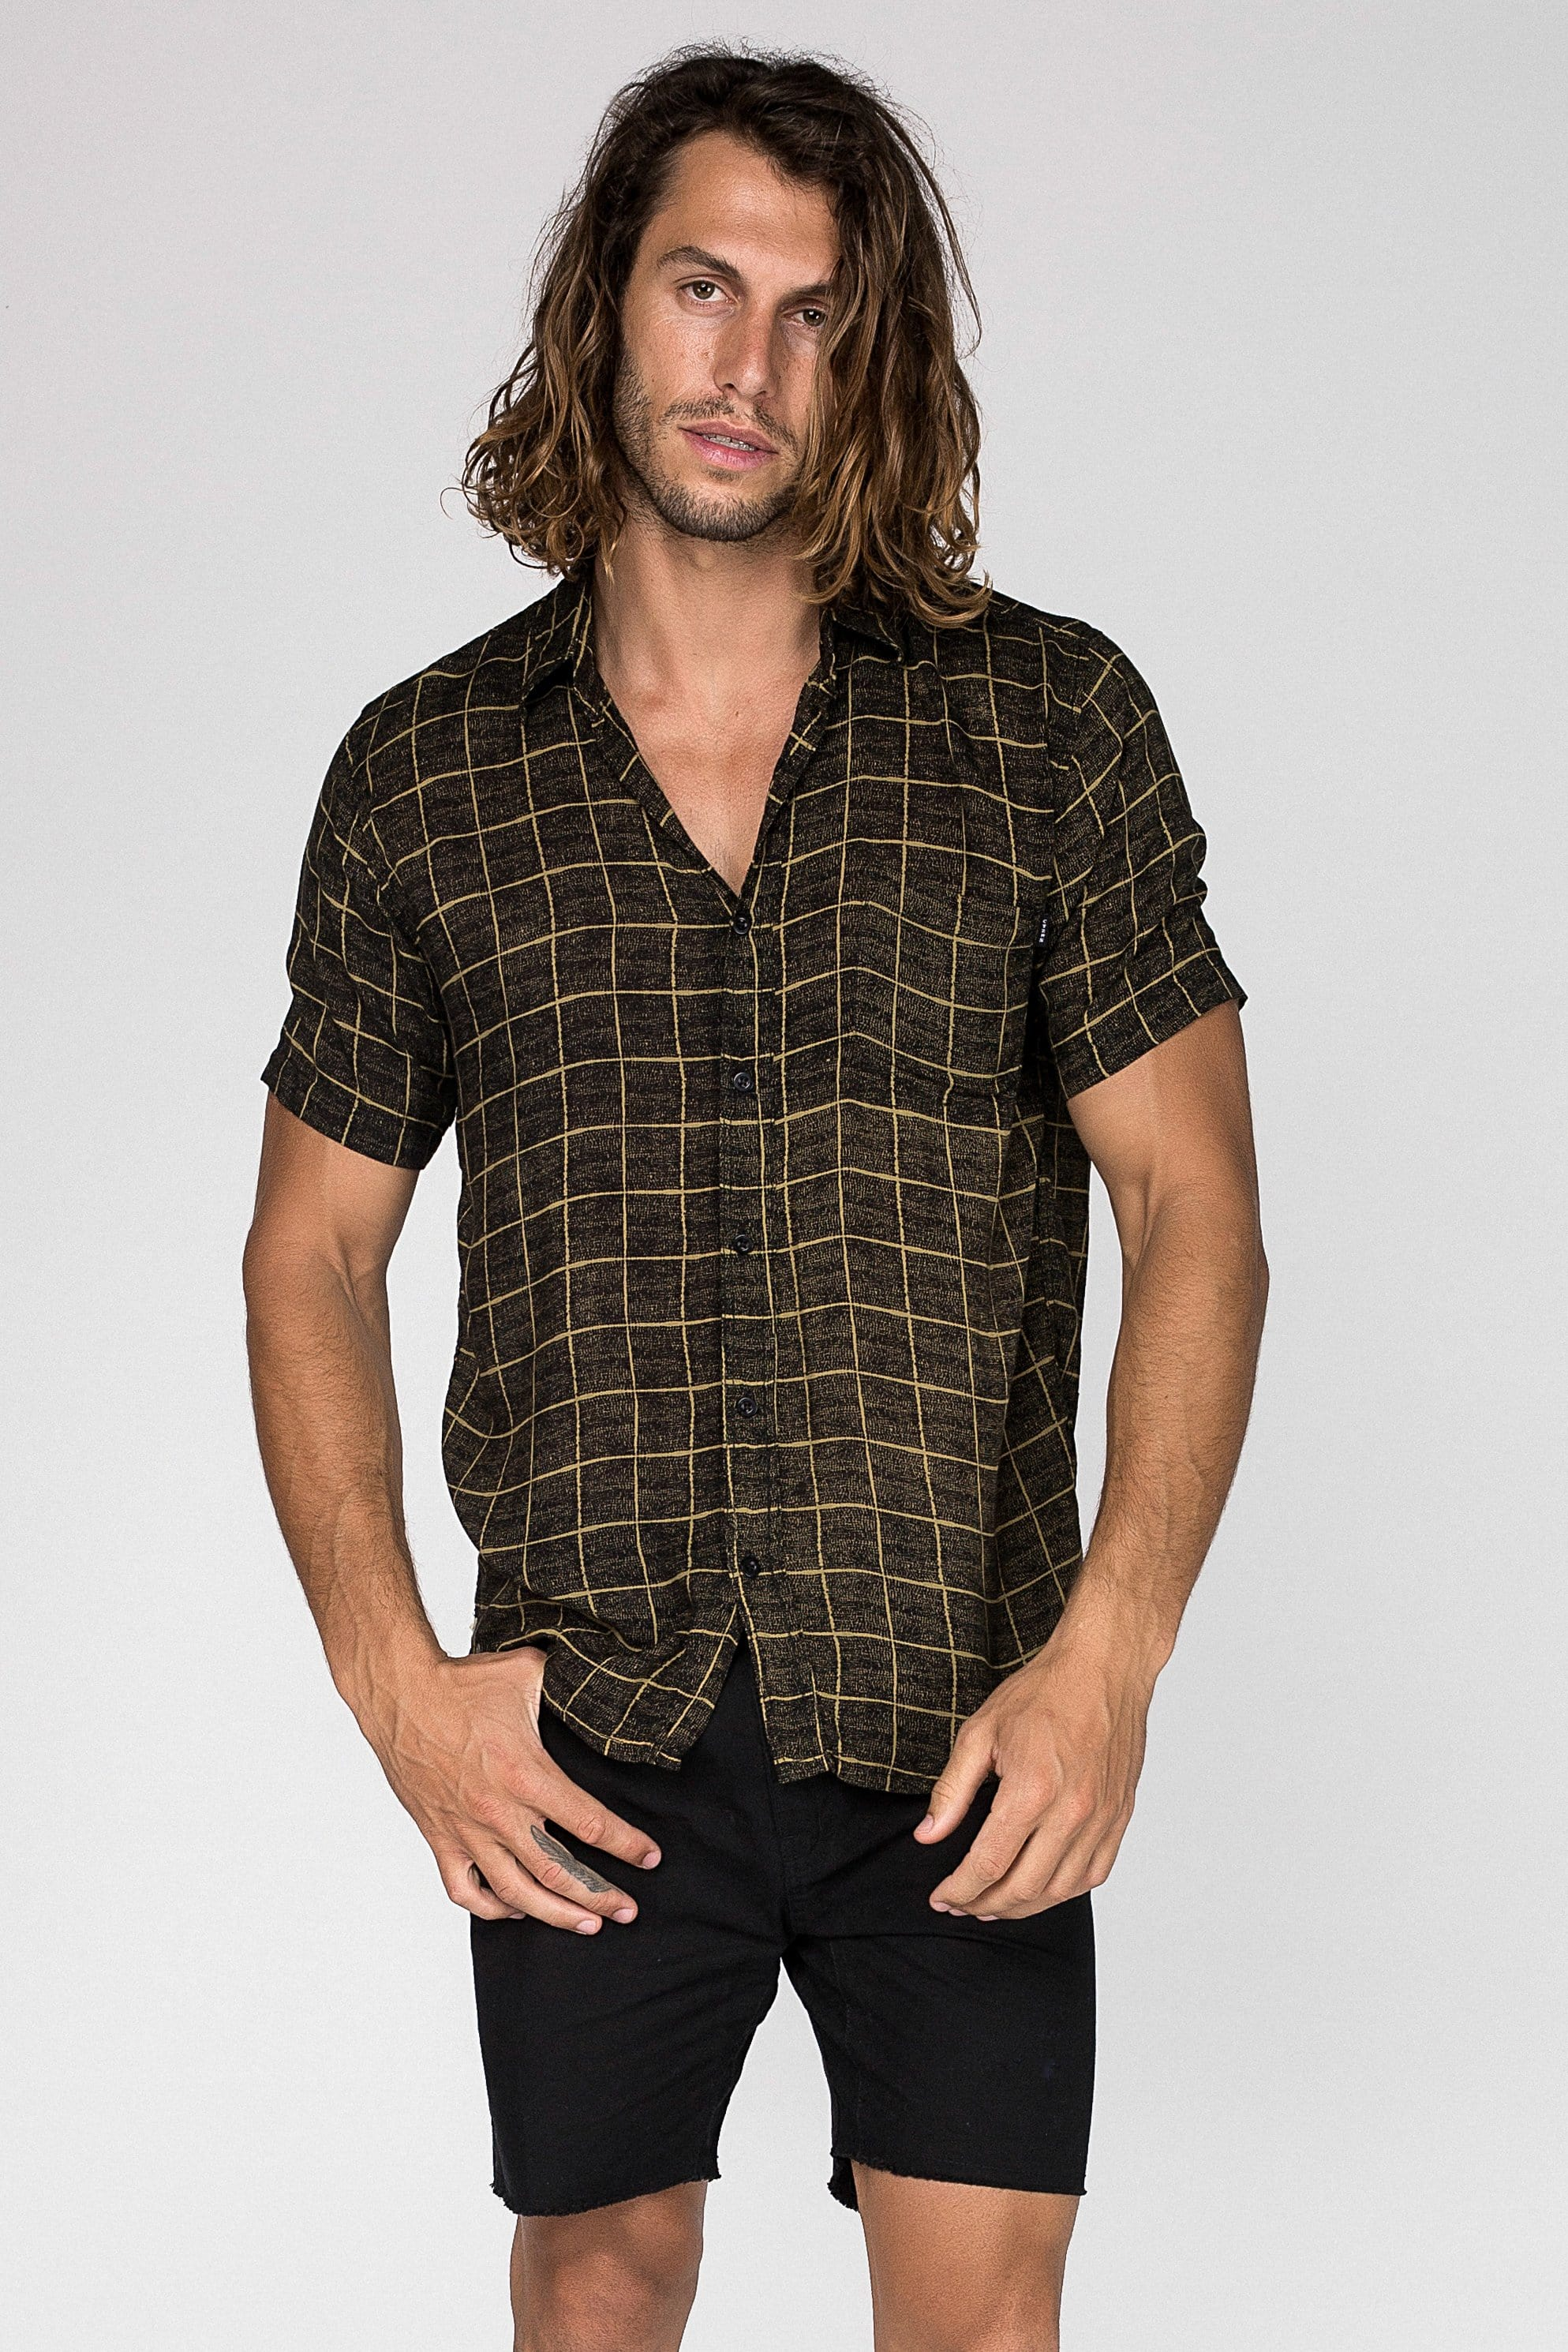 Point Square Shirt - Man Shirt - CITIZENS